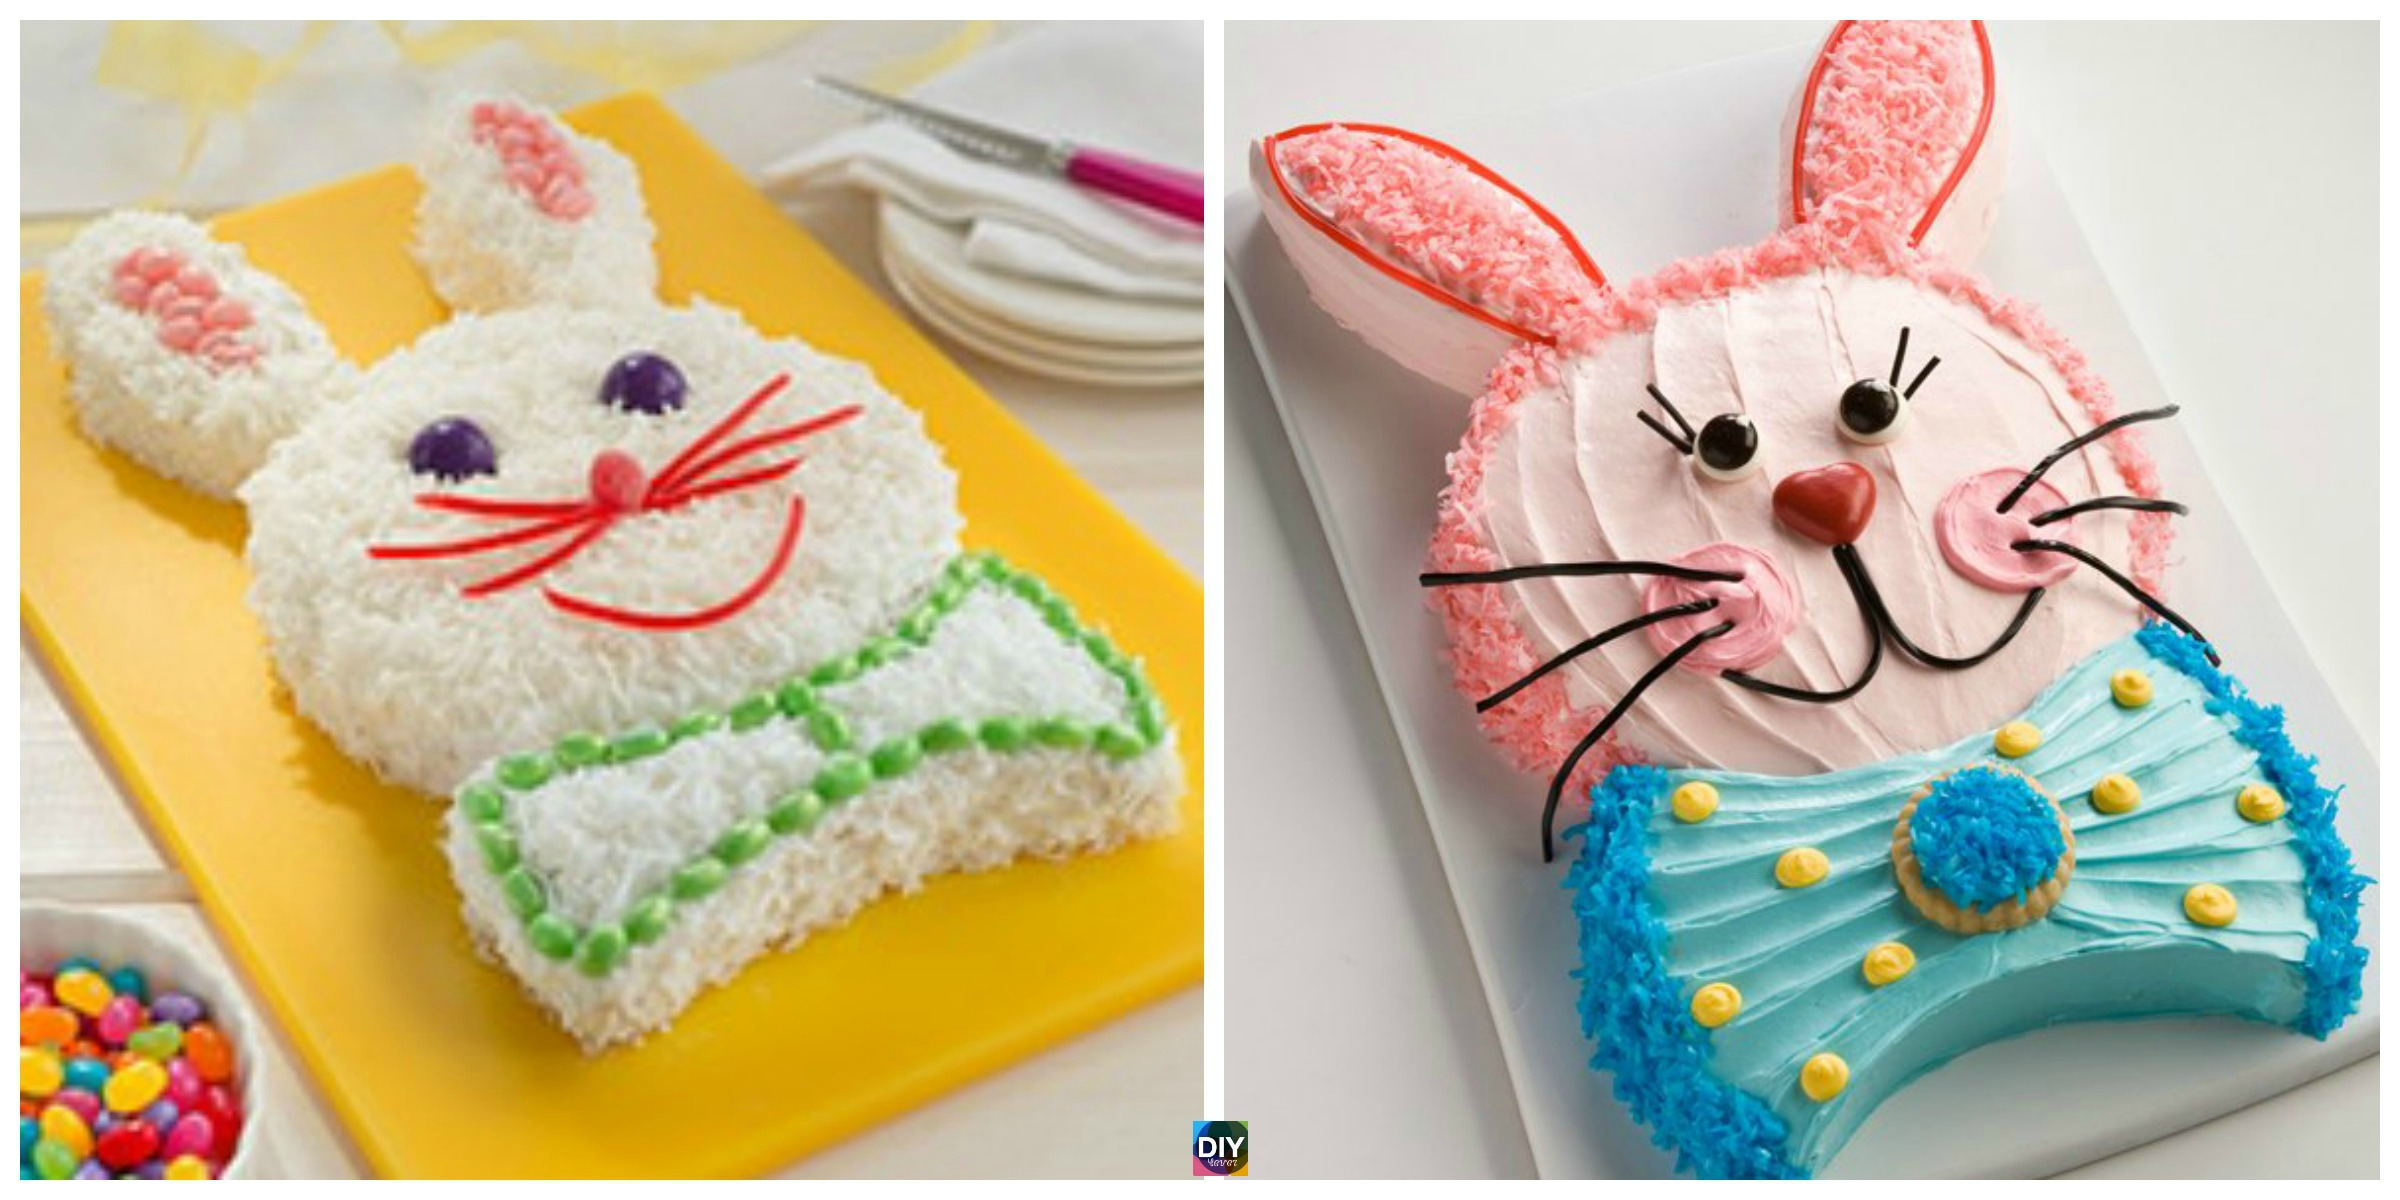 Easy DIY Easter Bunny Cake Tutorial